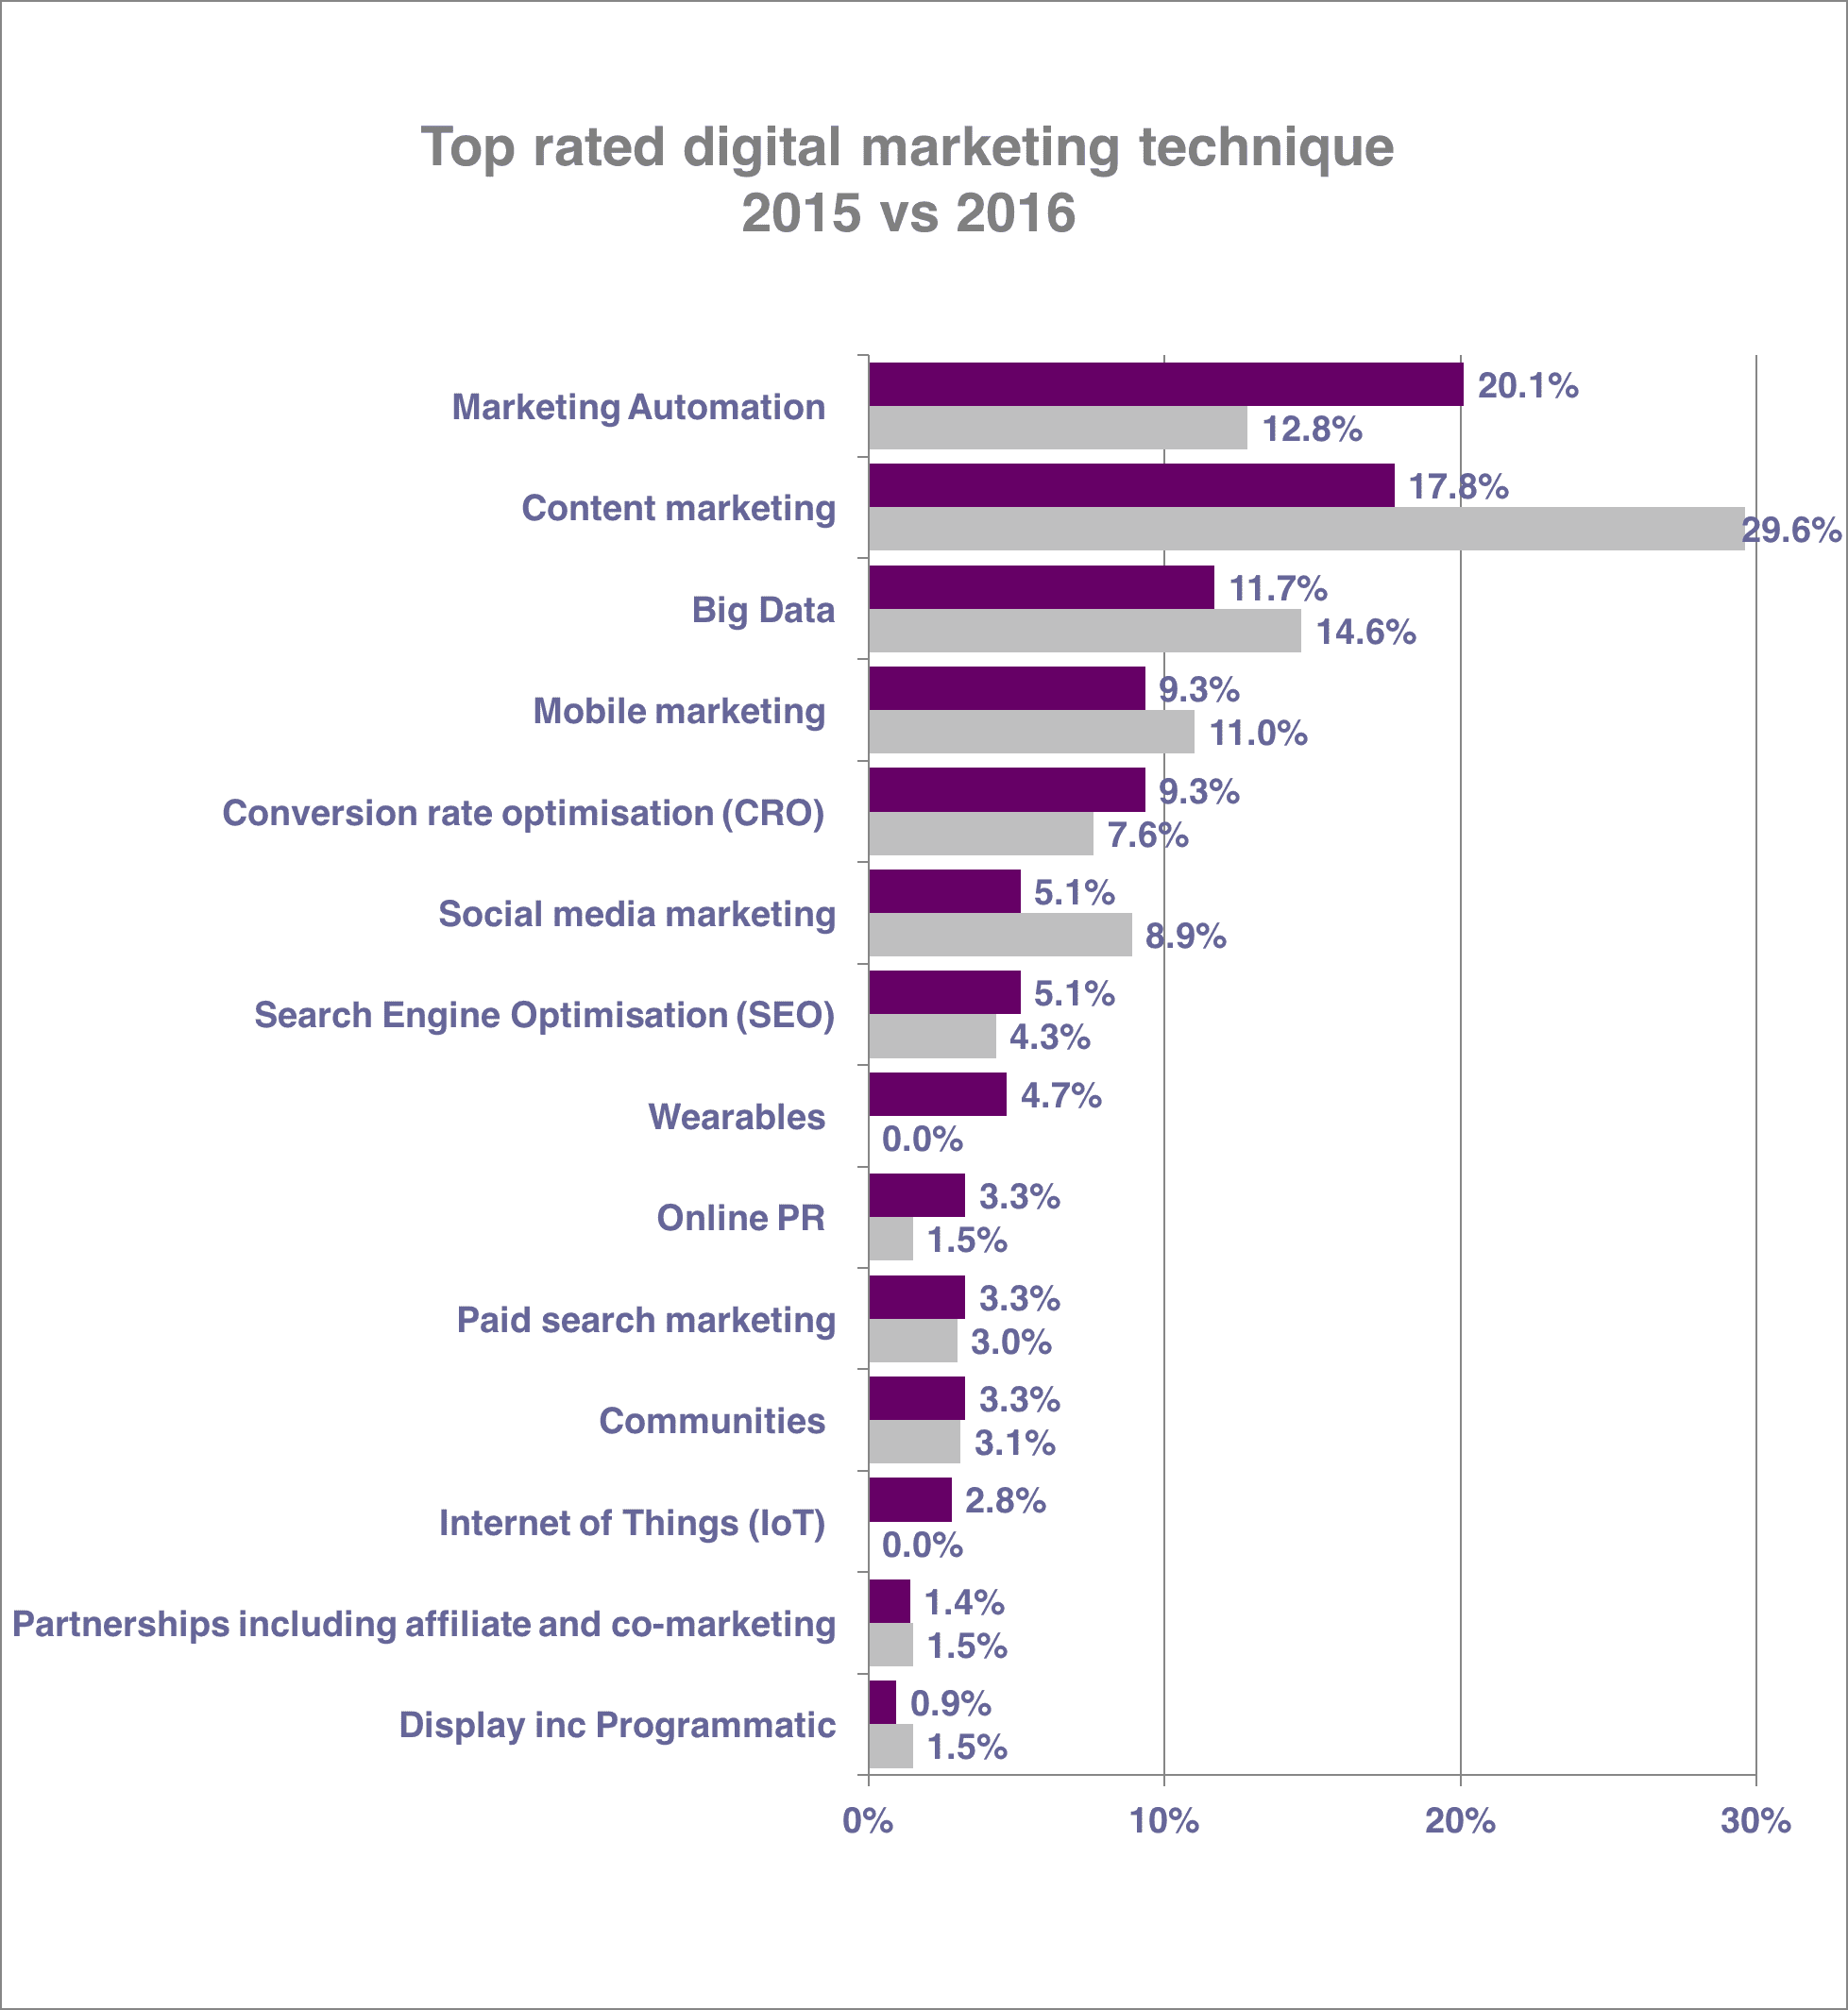 Digital Marketing Trends 2016 vs 2015